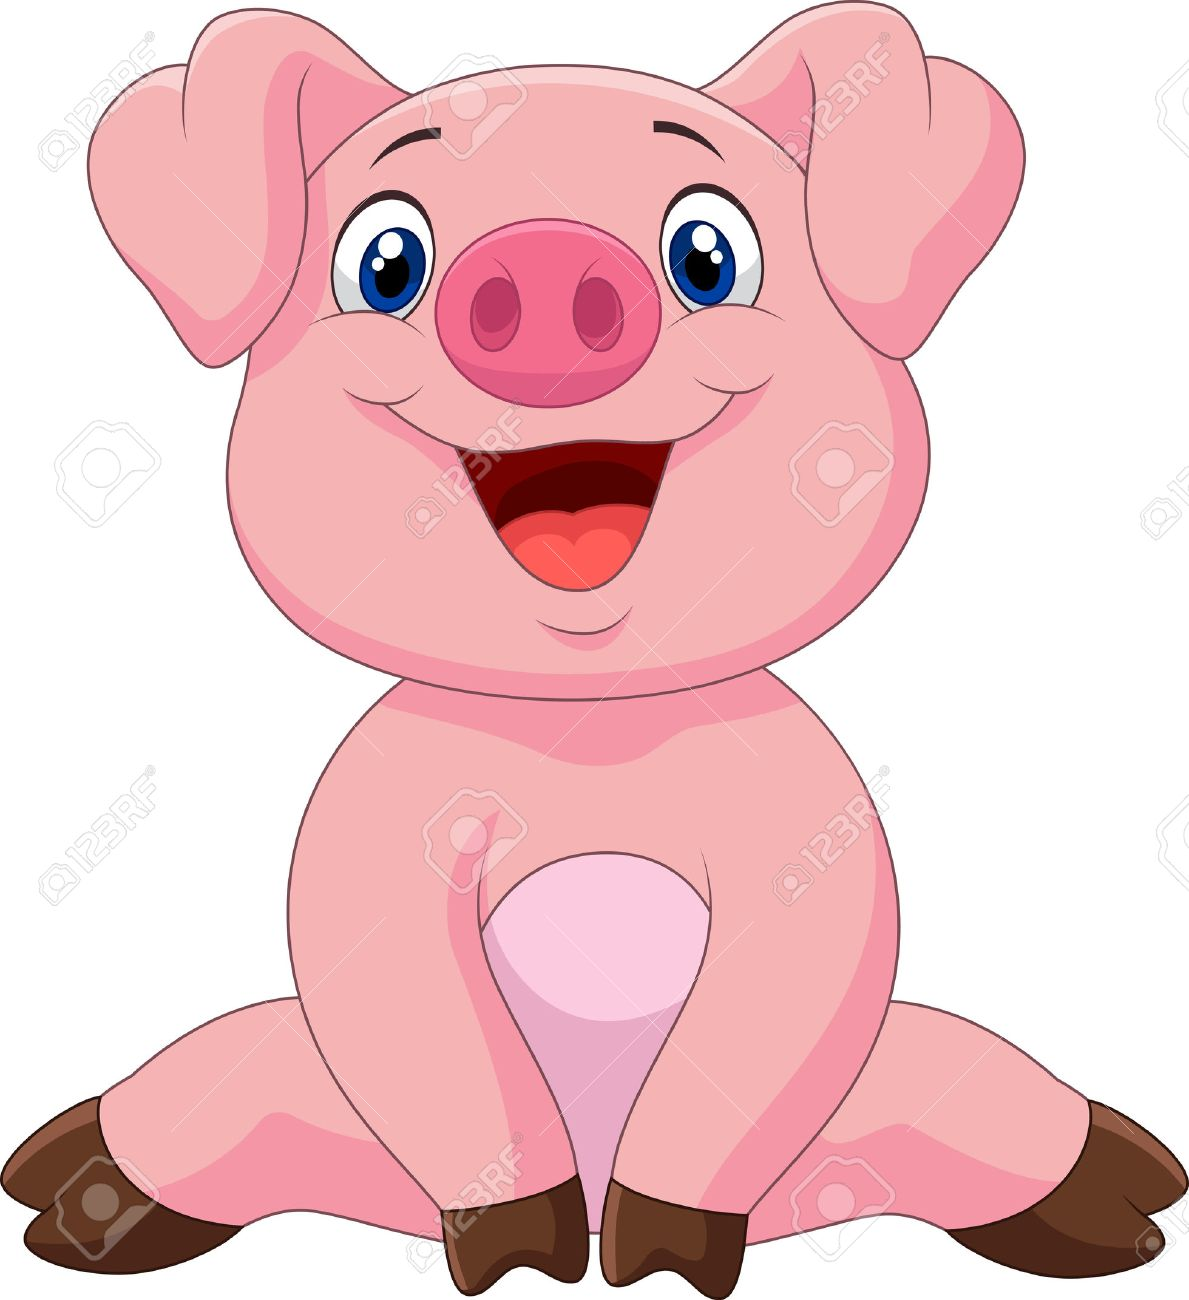 Dessin Animé Adorable Bébé Cochon Illustration Vectorielle